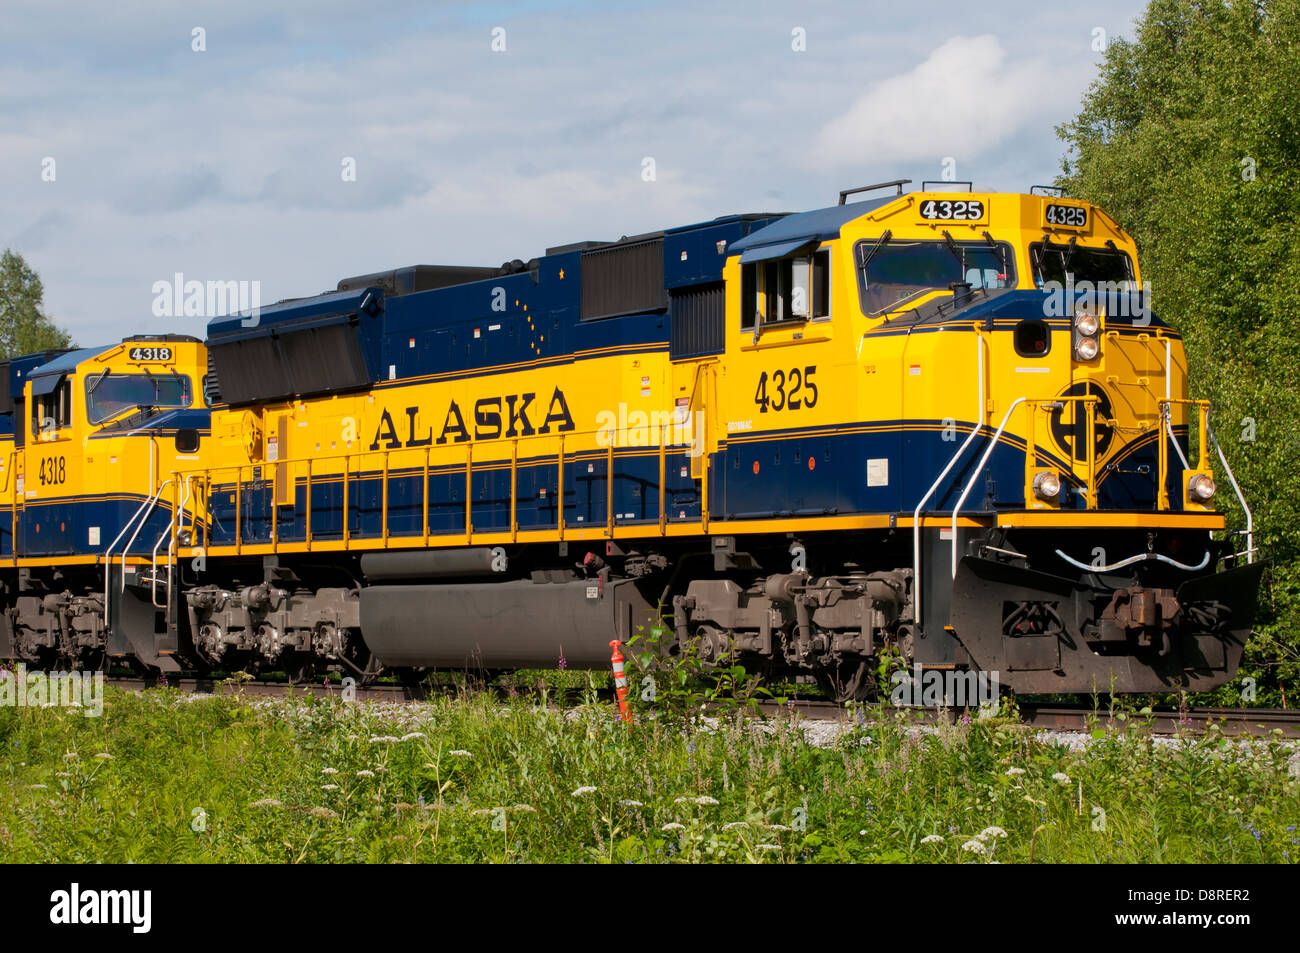 Train in Alaska,USA - Stock Image